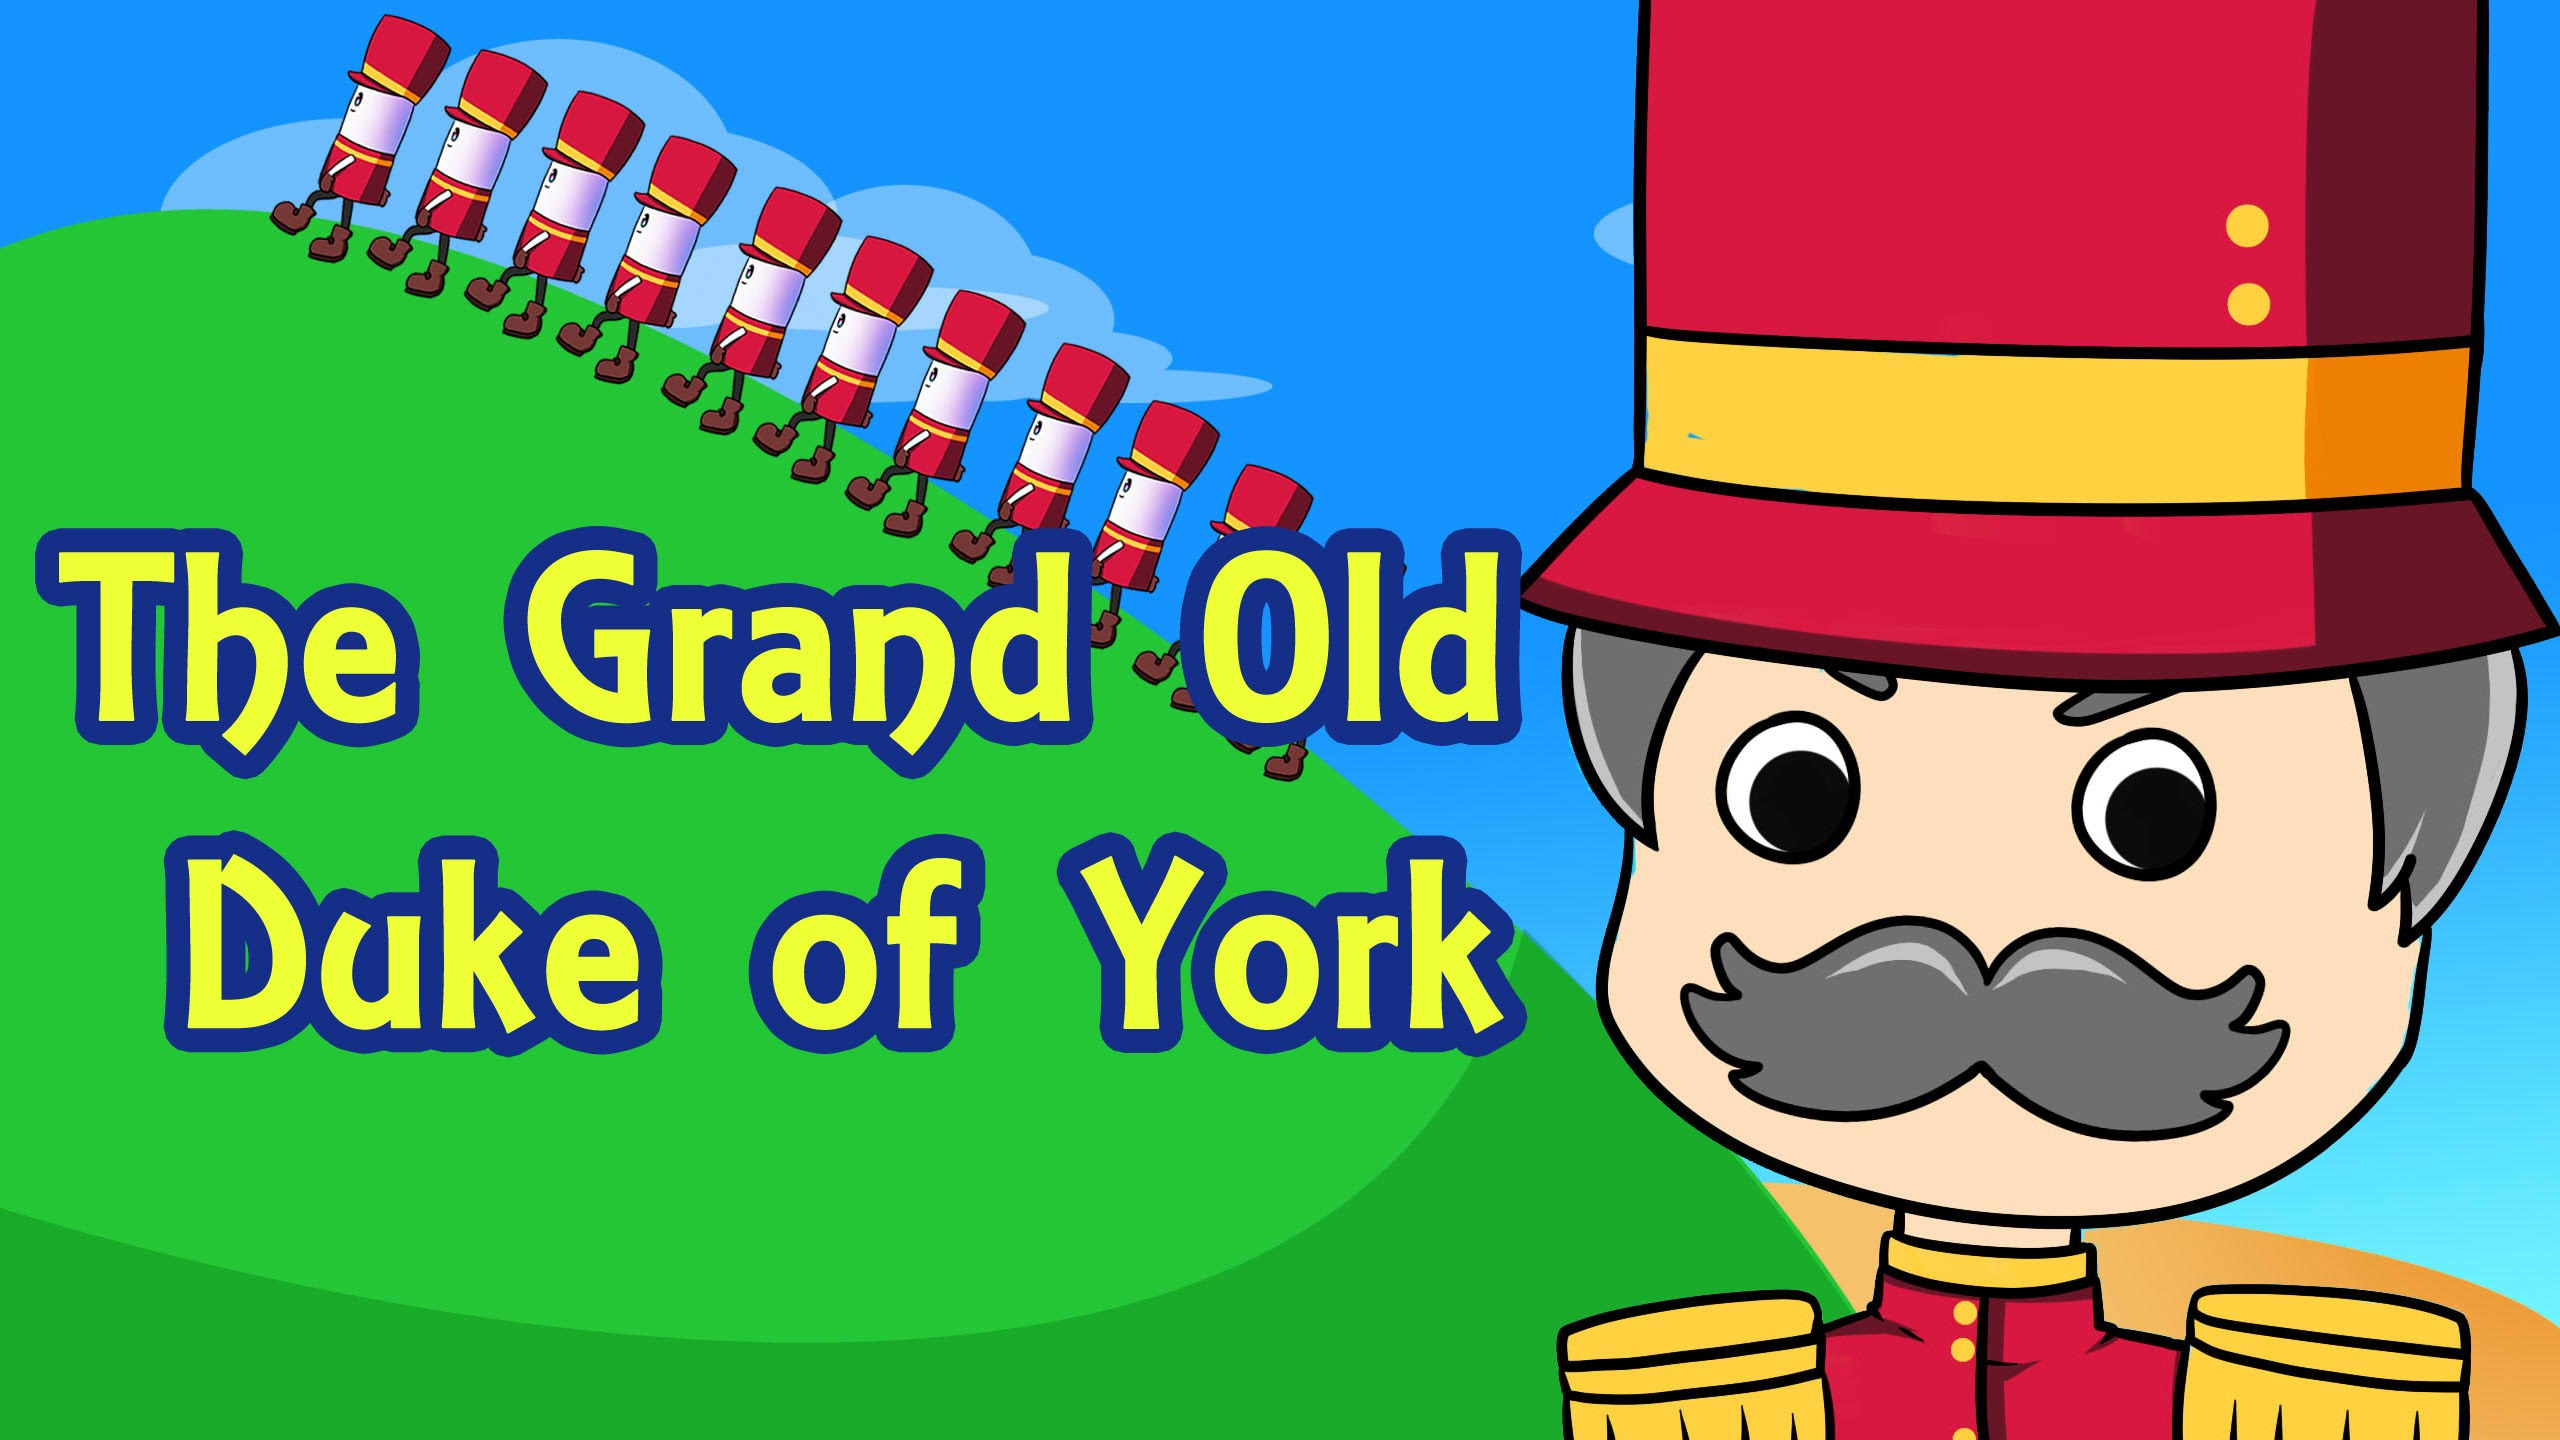 York clipart grand old. The duke of nursery